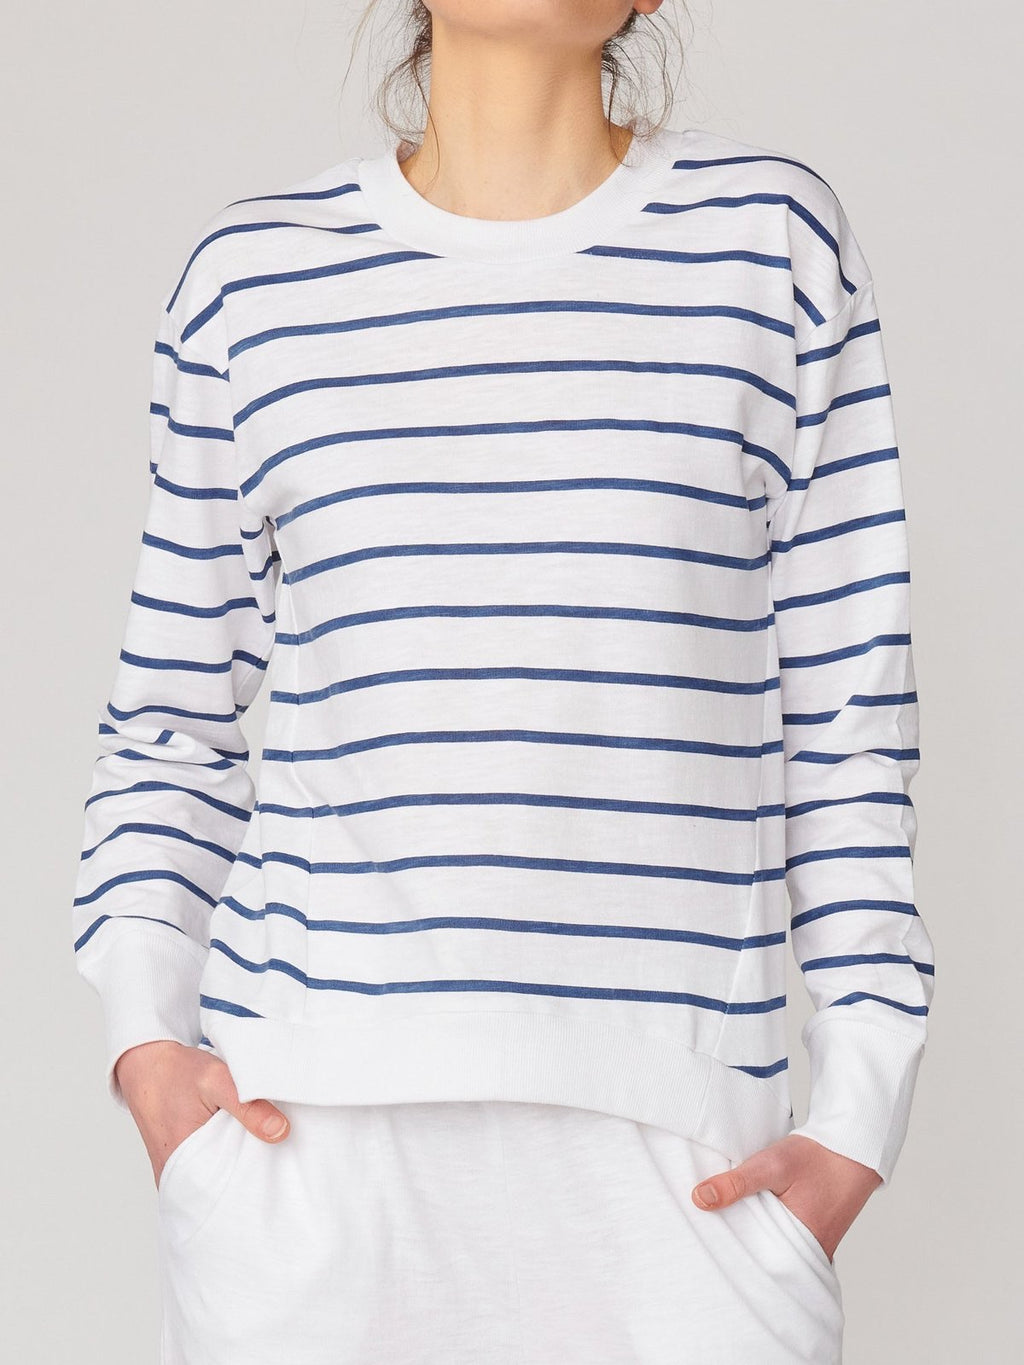 Lulu Organic Cotton Essentials - New Jersey Sweater In White/Indigo Stripe